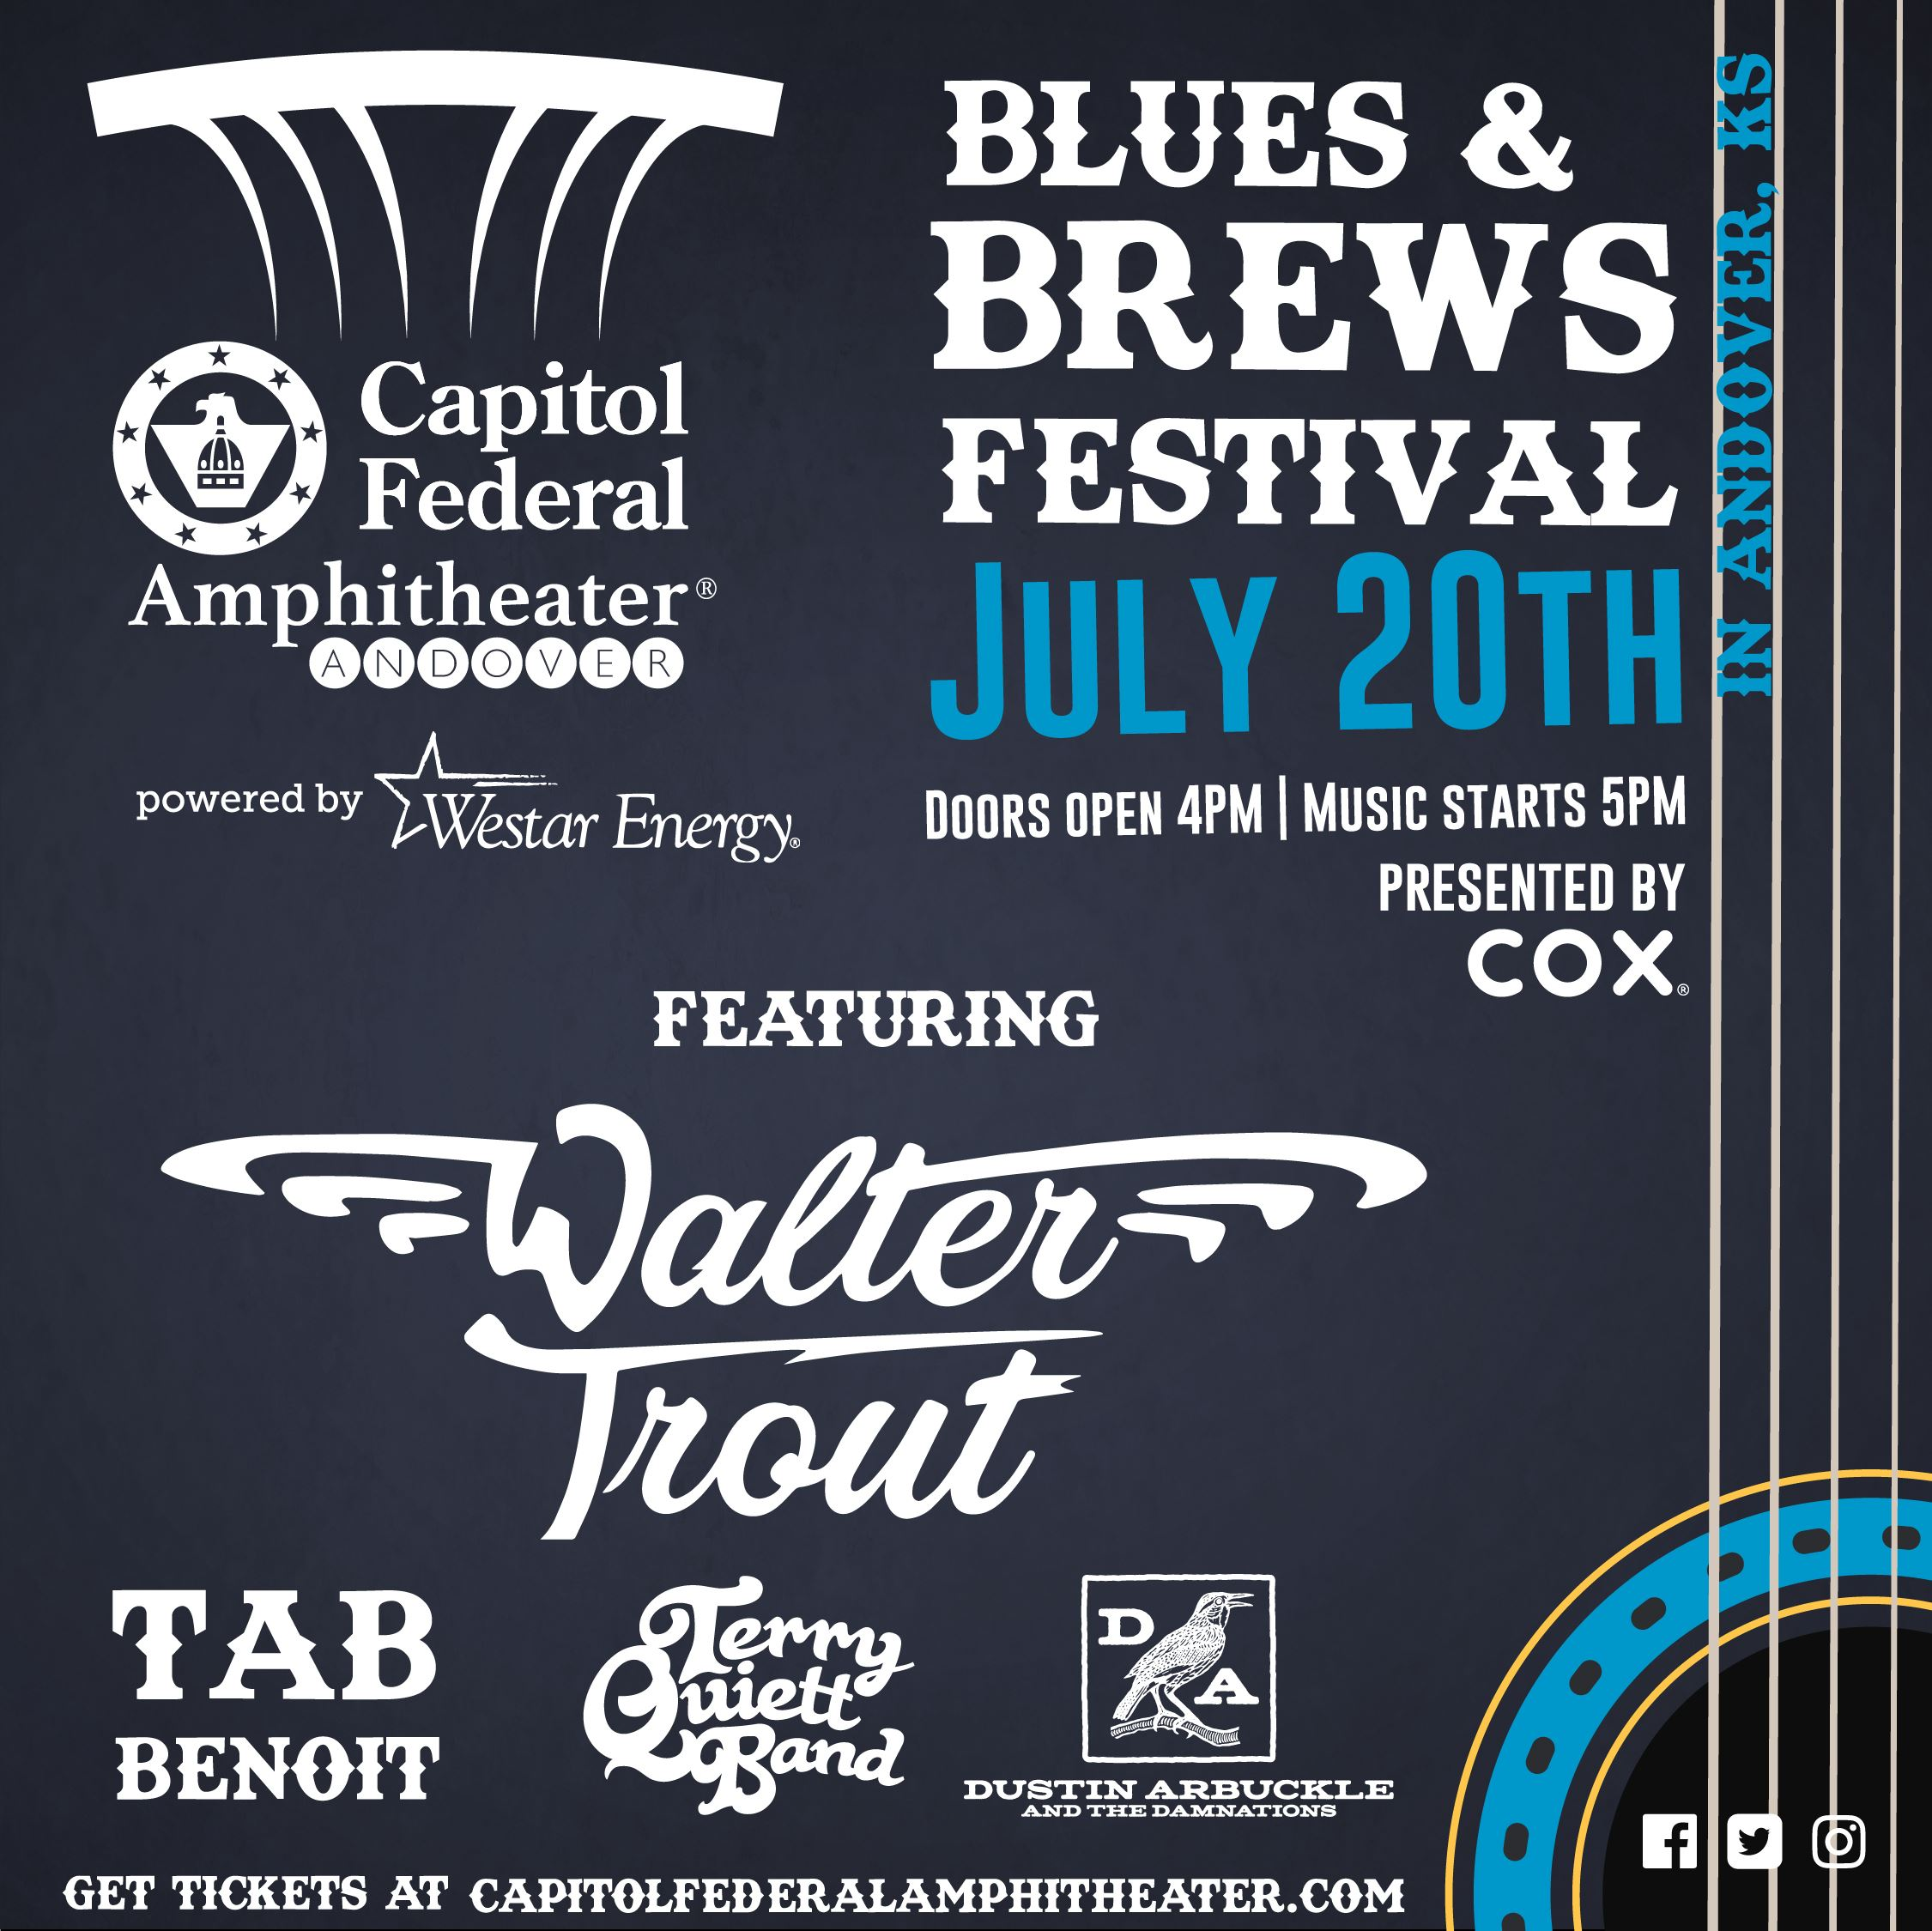 Blues and Brews Festival Poster